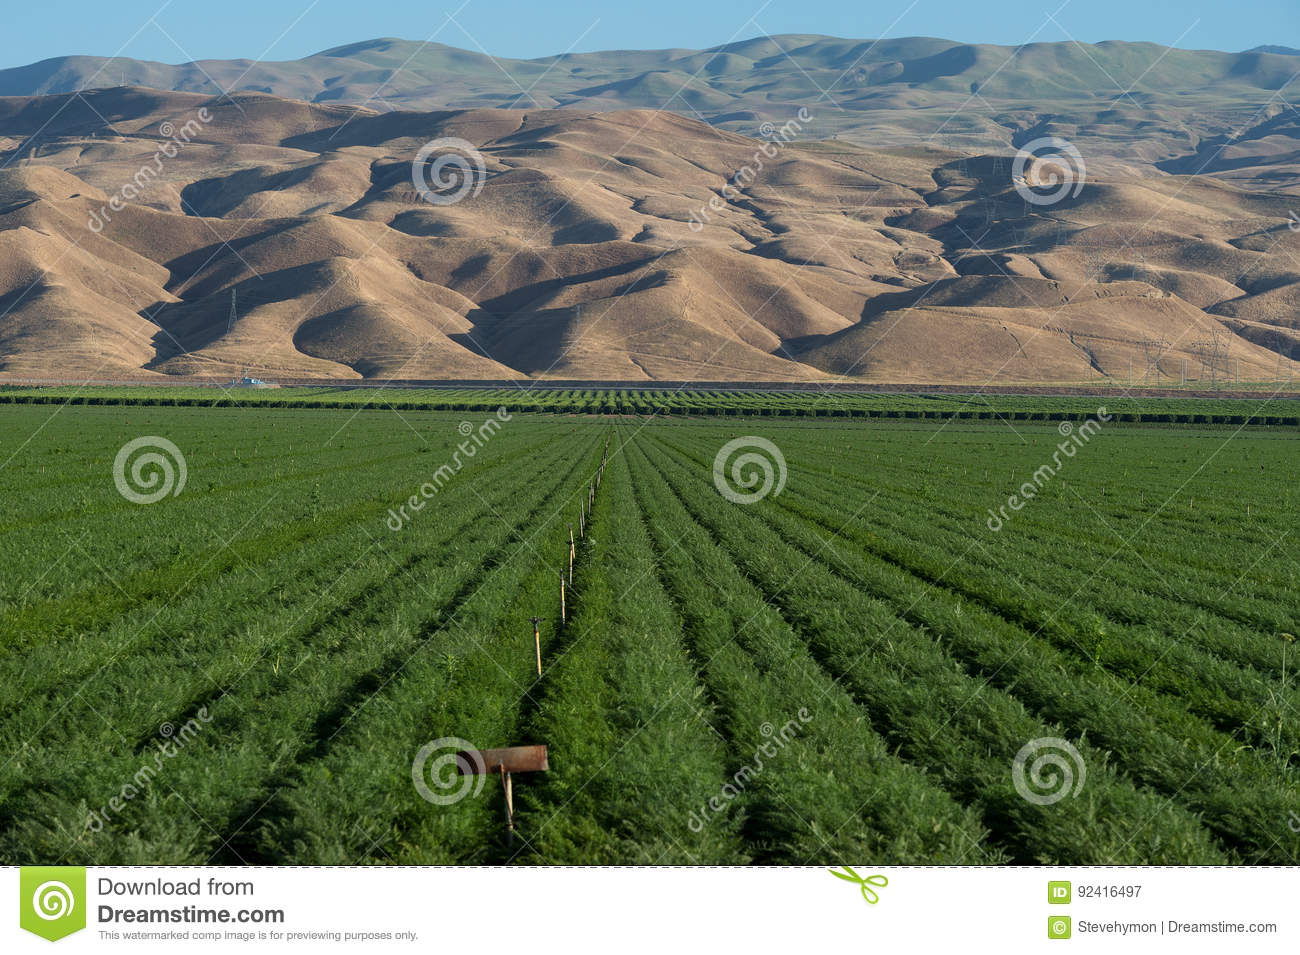 Lush green alfalfa farm field and mountains in Southern California